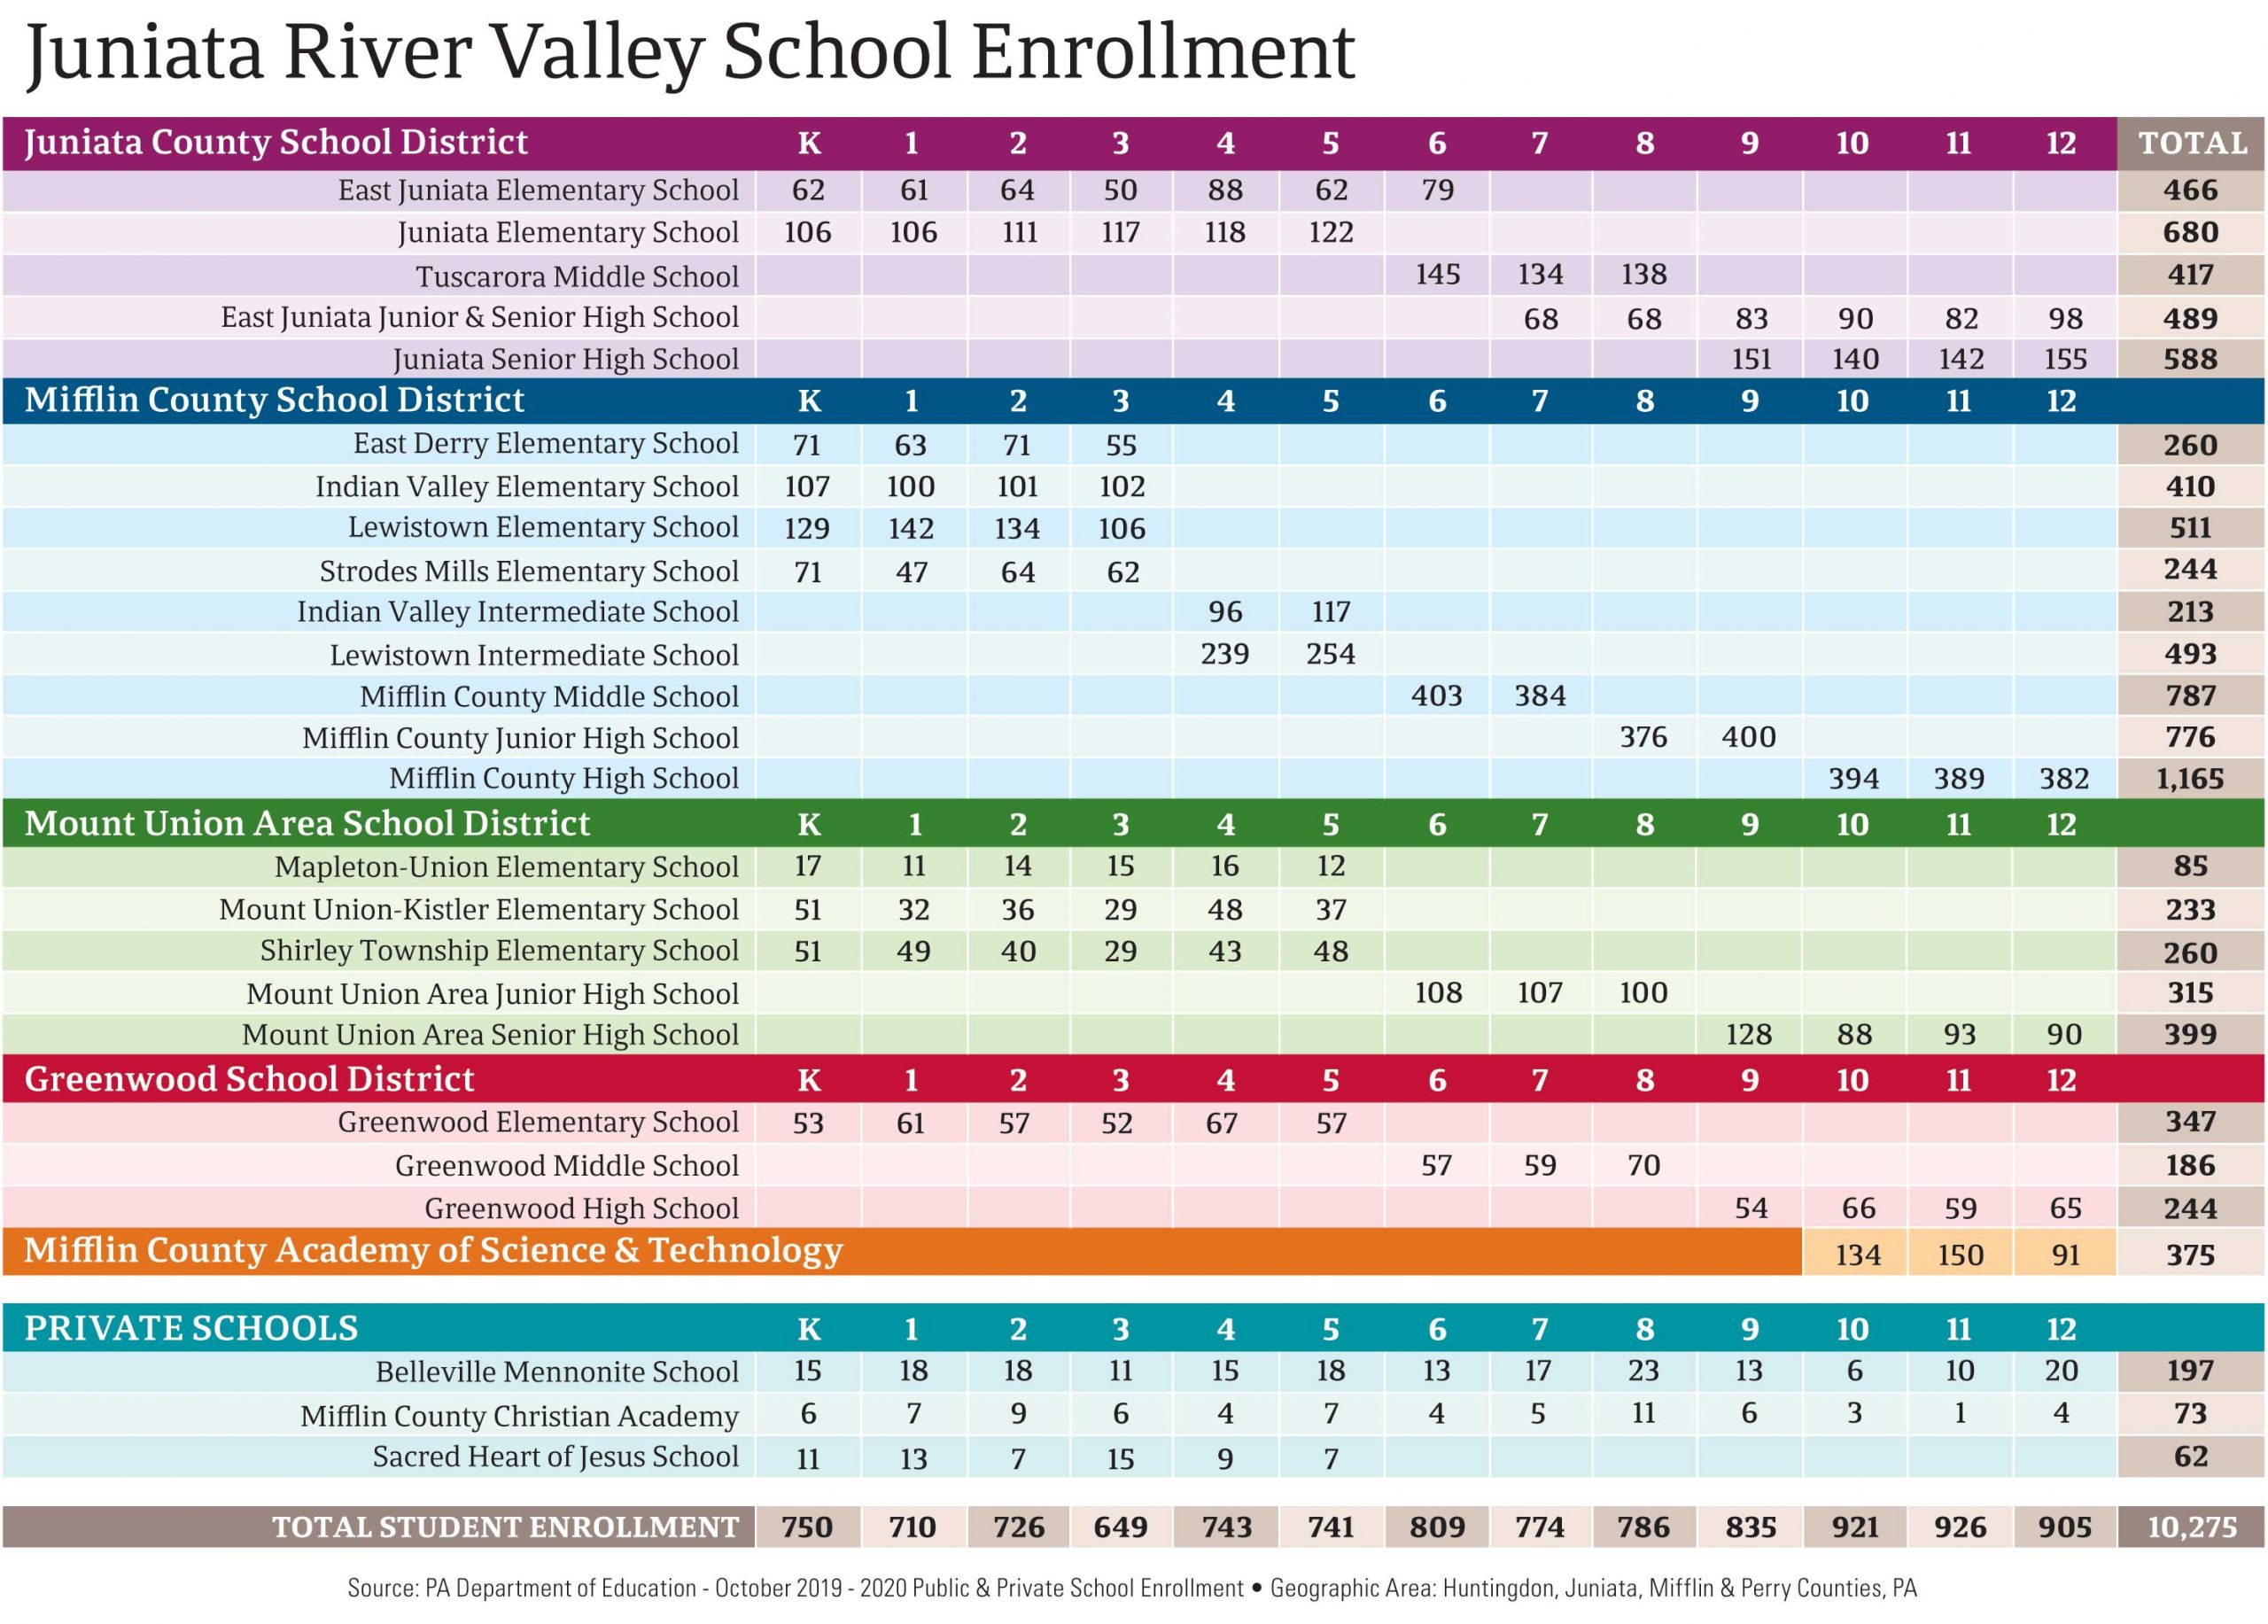 Juniata River Valley School Enrollment